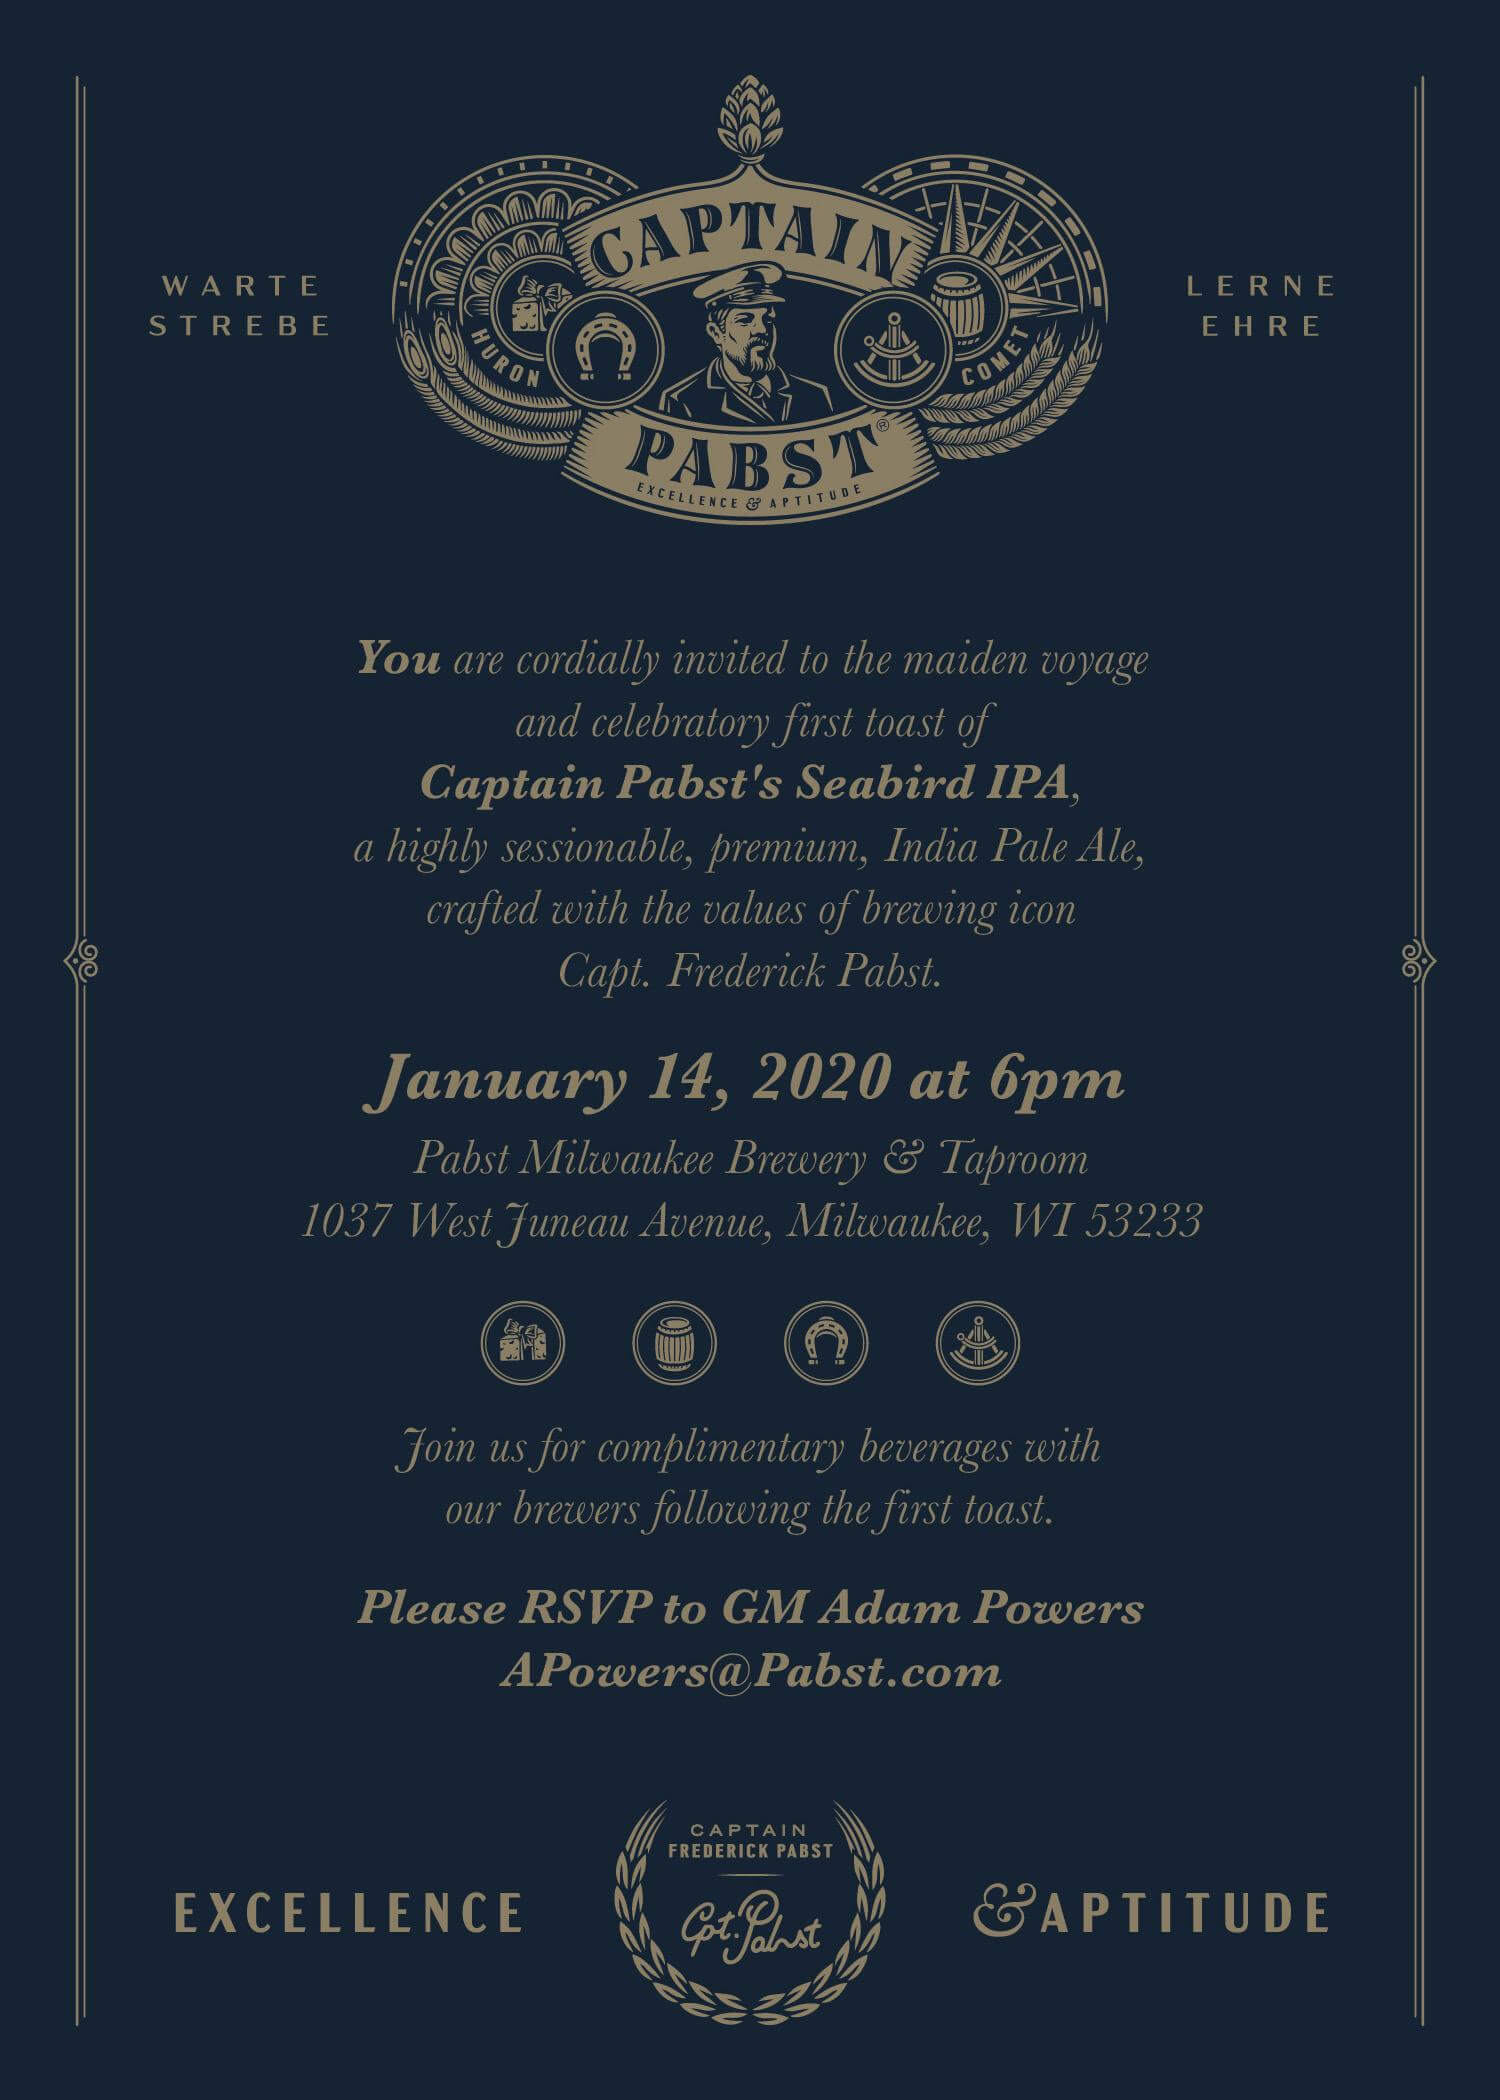 Invite for the launch party for Captain Pabst and its flagship beer, Seabird IPA